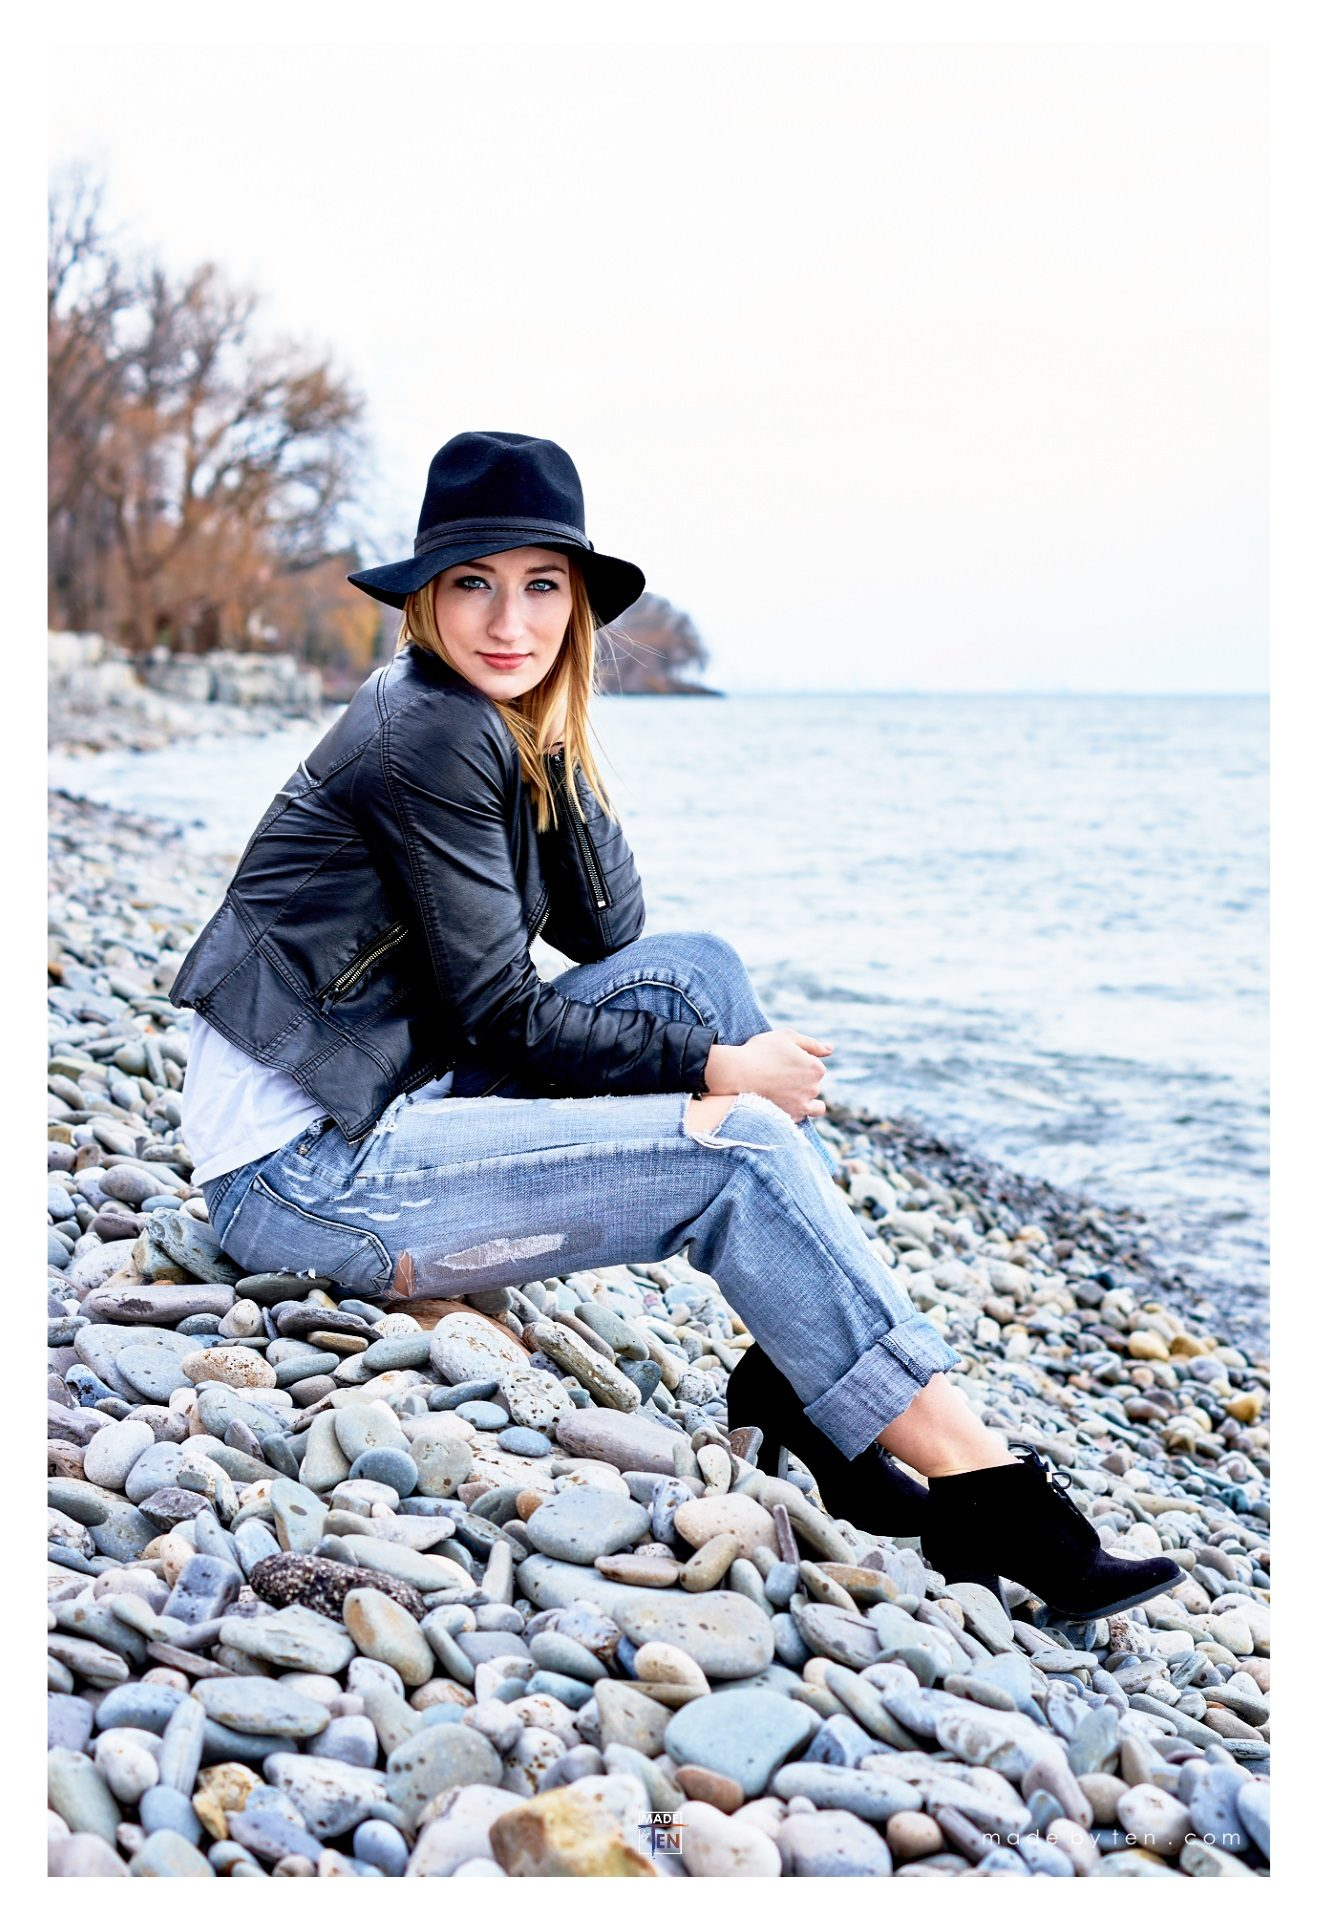 Pebble Beach Fashion Editorial - GTA Women Lifestyle Photography